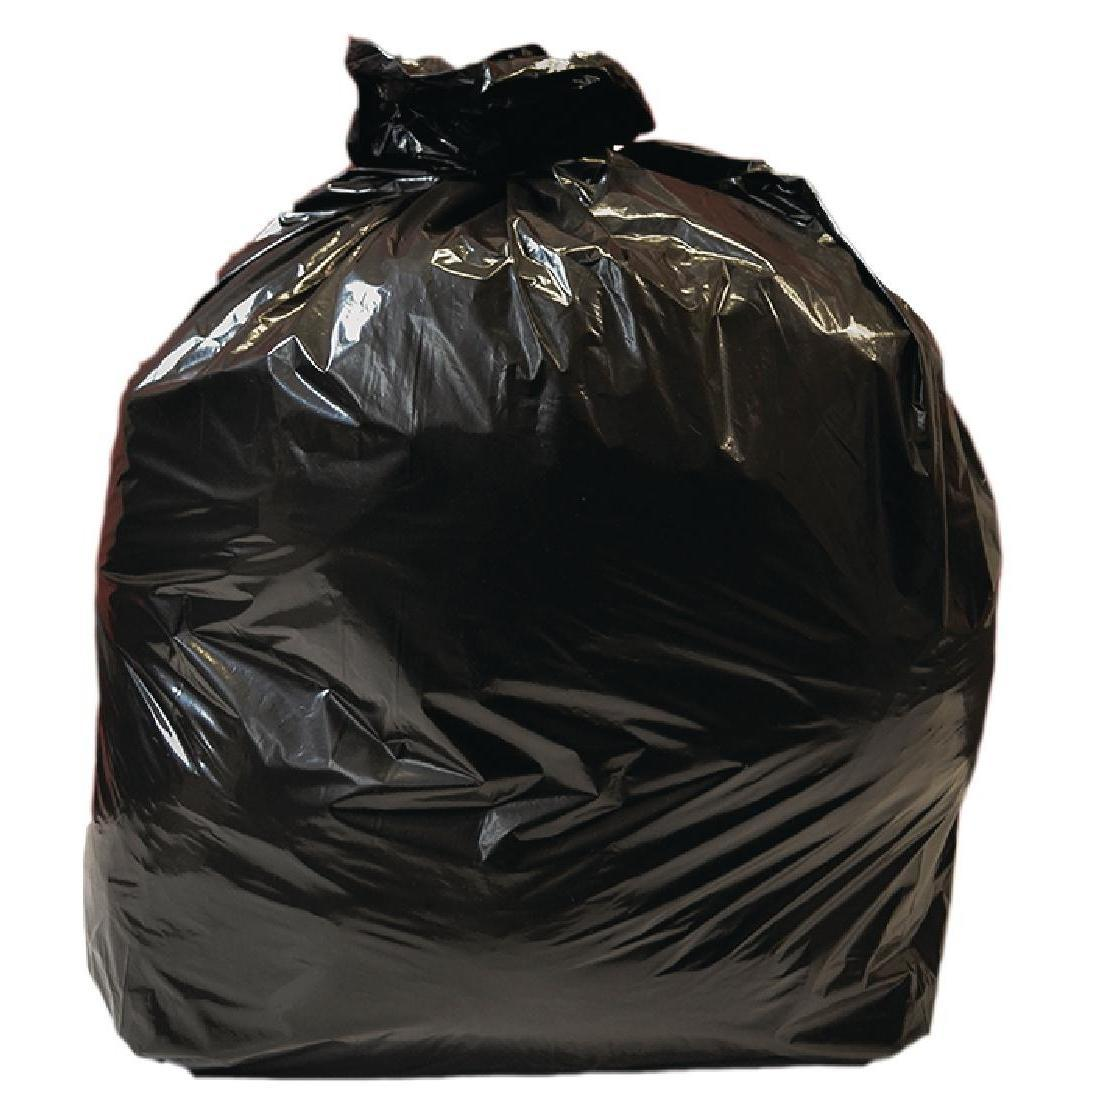 Jantex Large Medium Duty Black Bin Bags 90Ltr